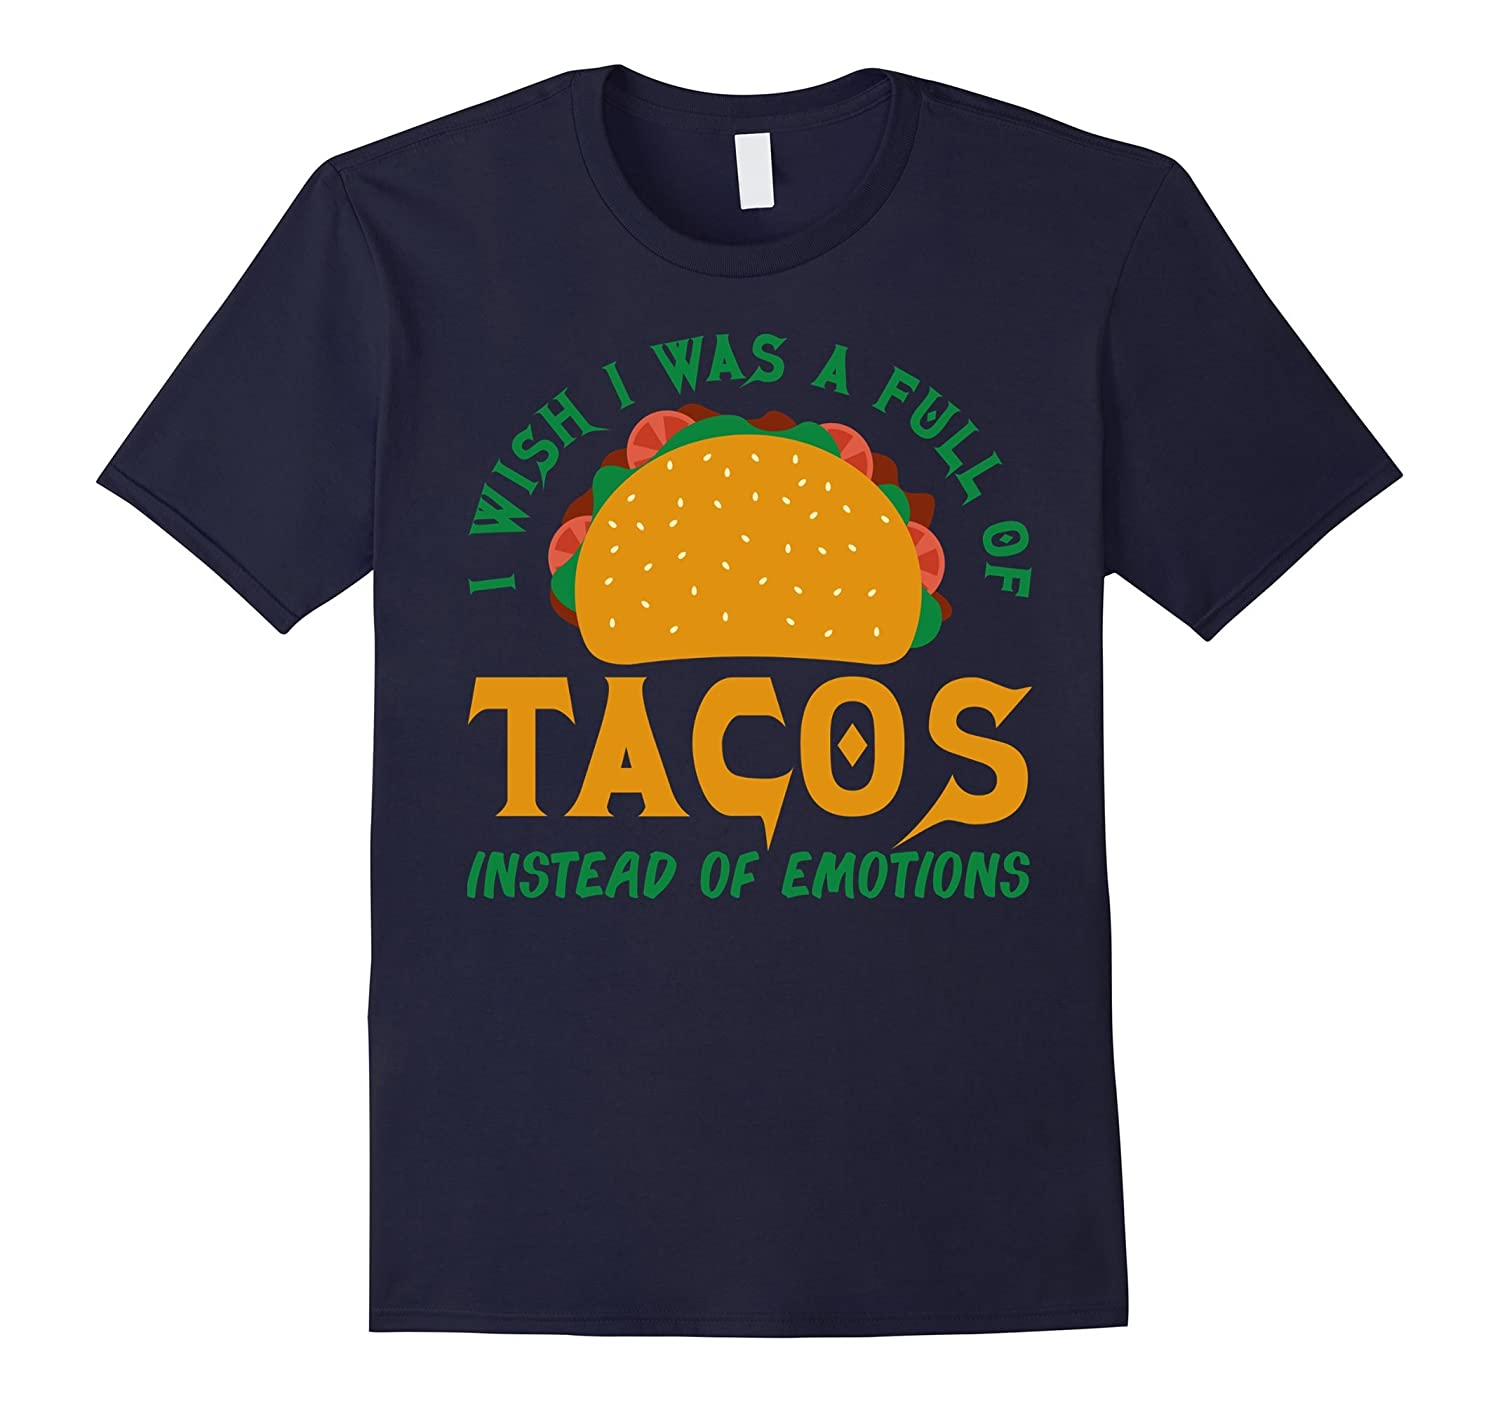 I Wish I Was Full Of Tacos Instead Of Emotions Funny T-shirt-TD